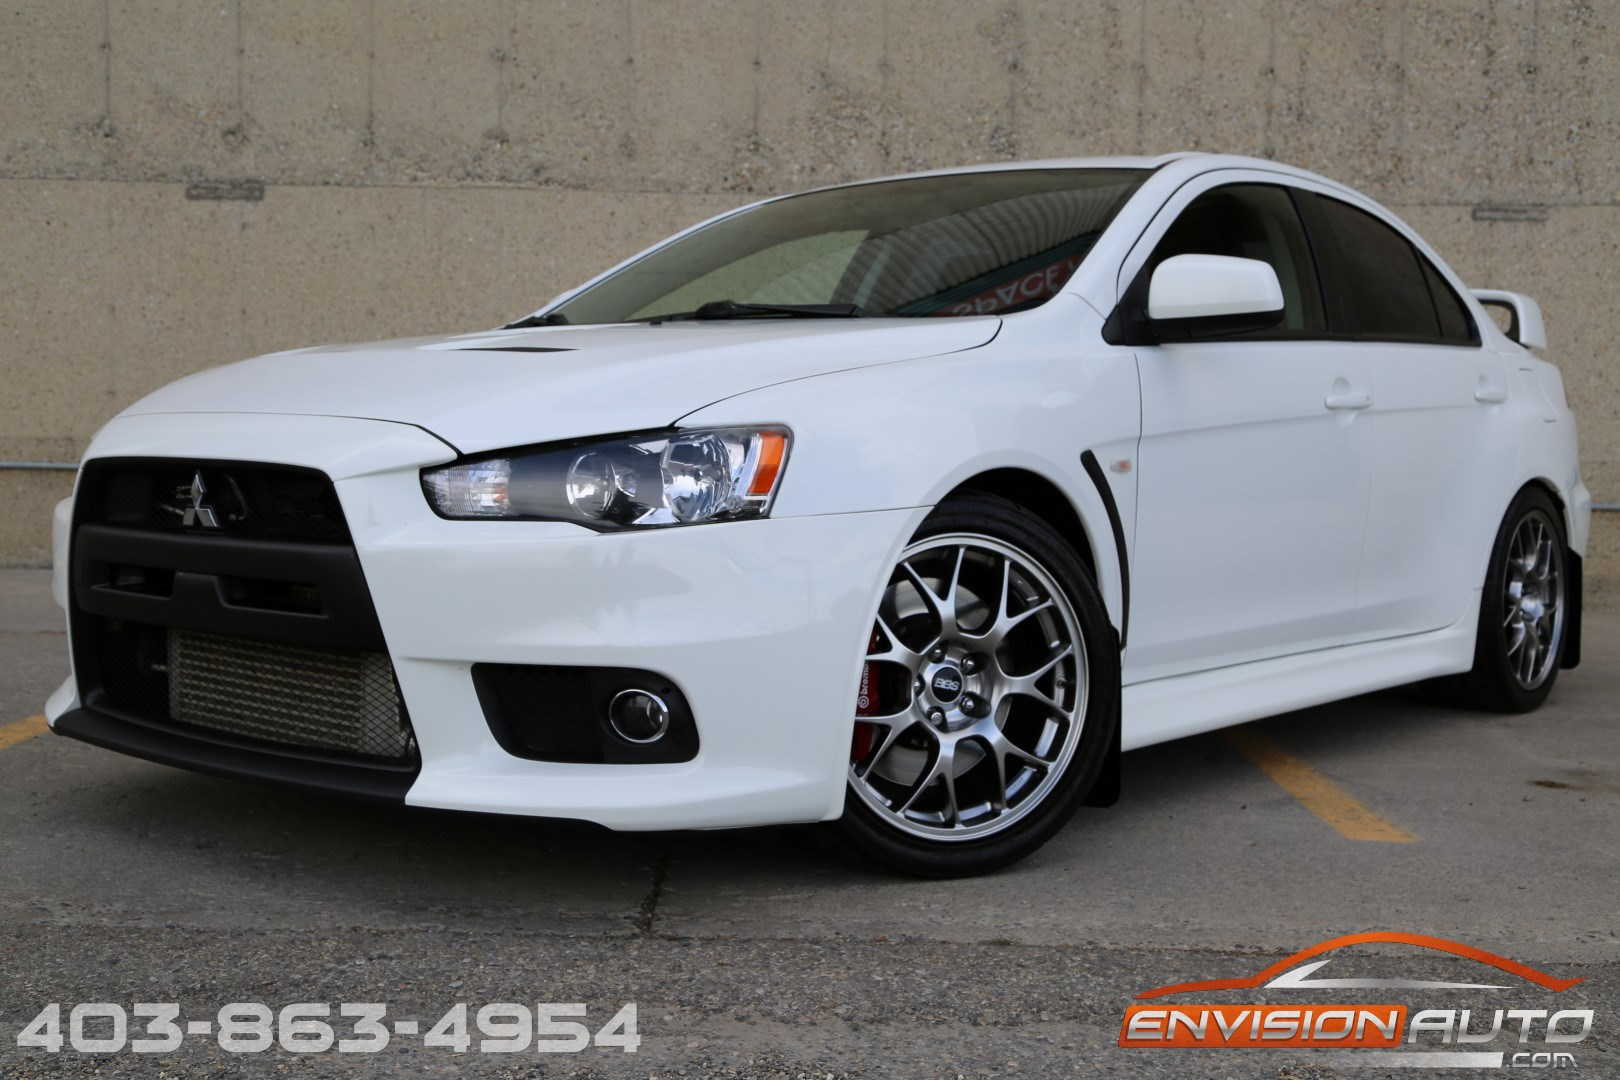 2010 mitsubishi lancer evolution gsr evo x modded 442 awhp envision auto. Black Bedroom Furniture Sets. Home Design Ideas